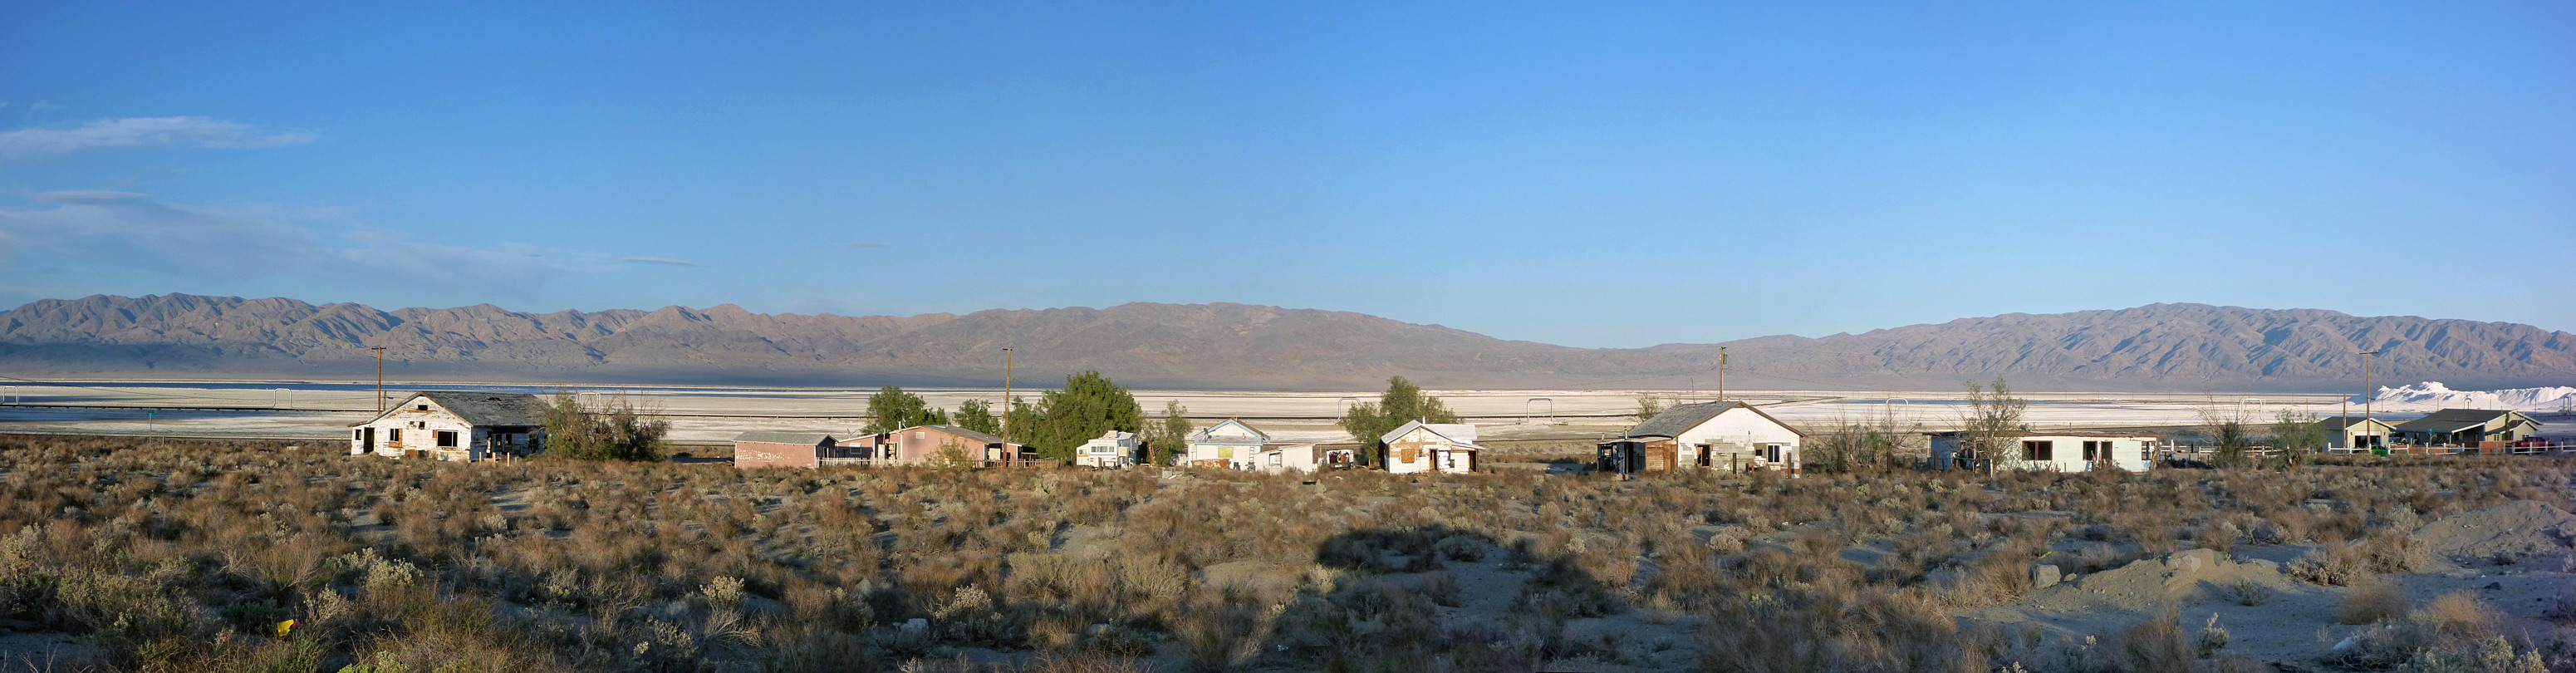 Houses in Trona